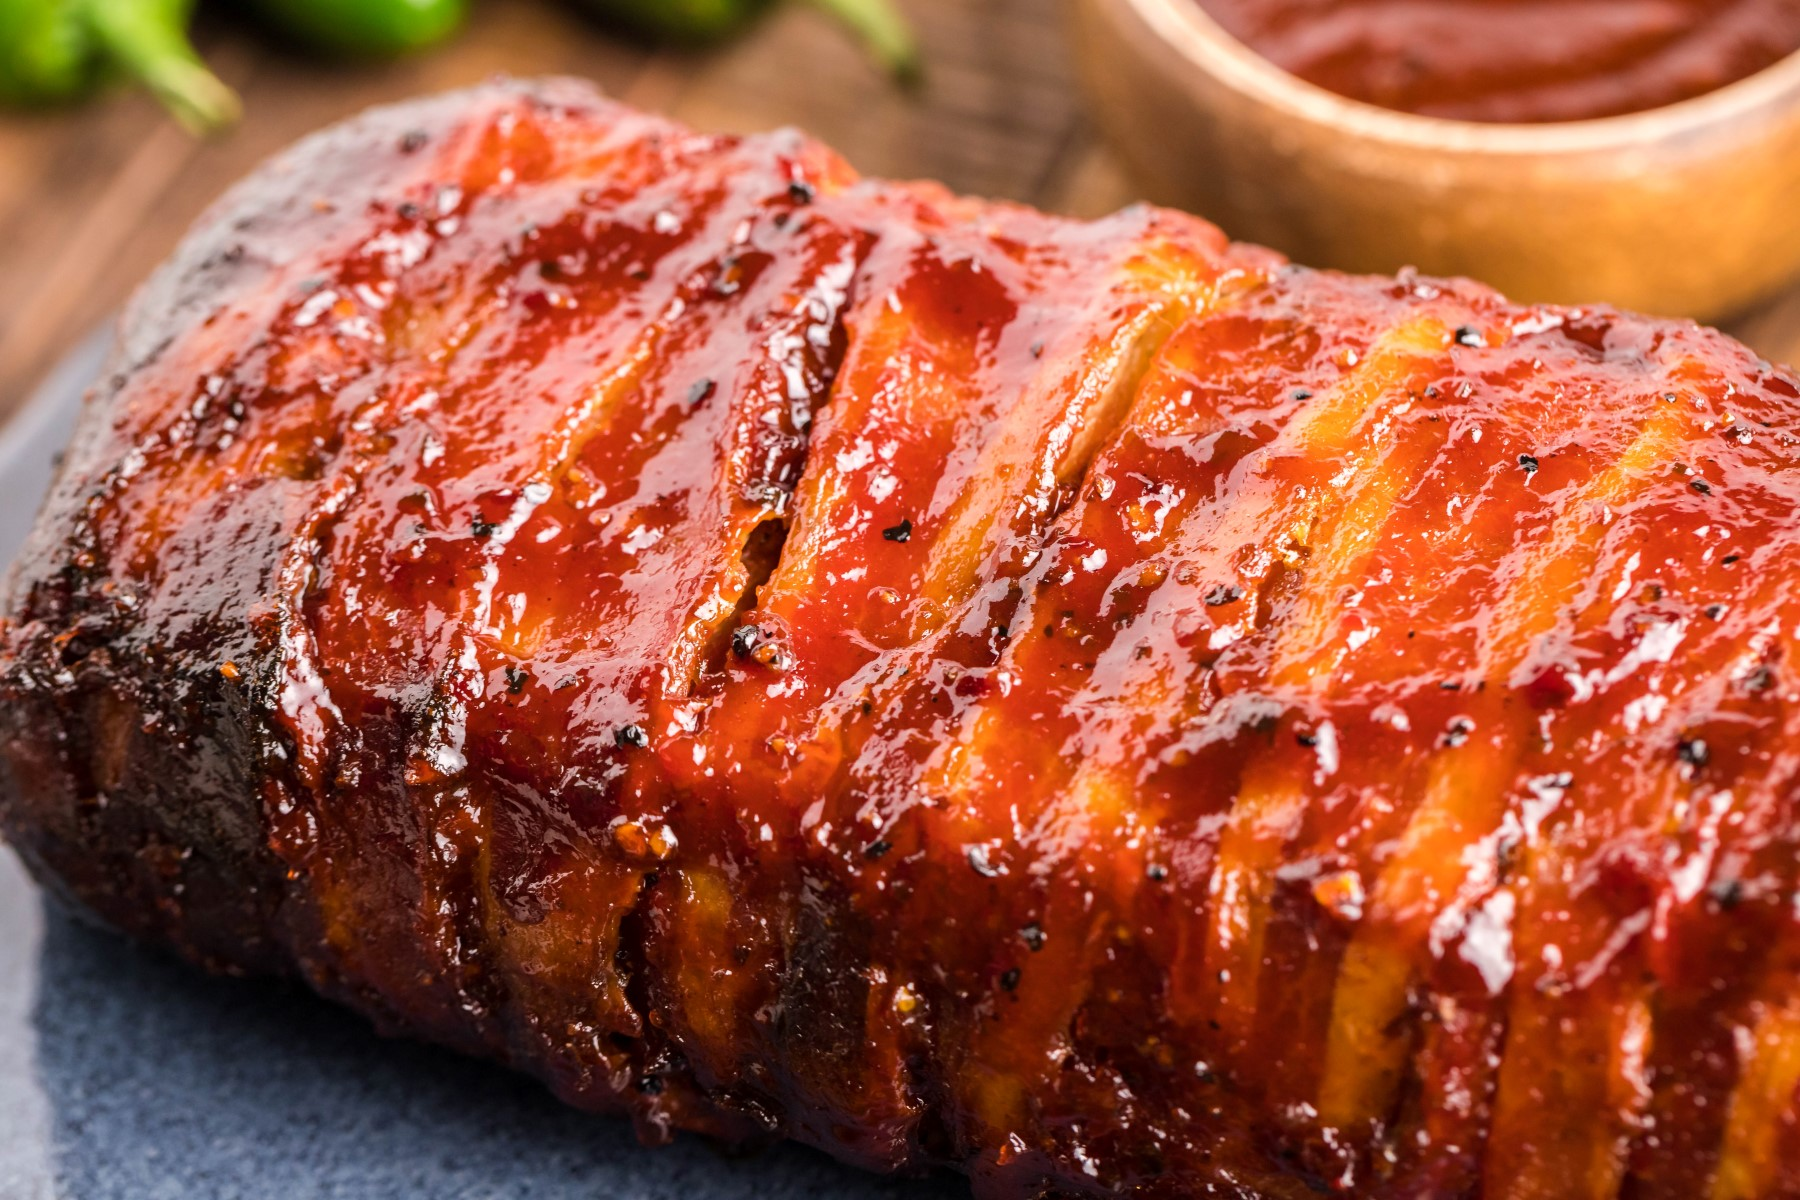 Fully smoked Bacon wrapped sausage roll covered with BBQ sauce on a cutting board.